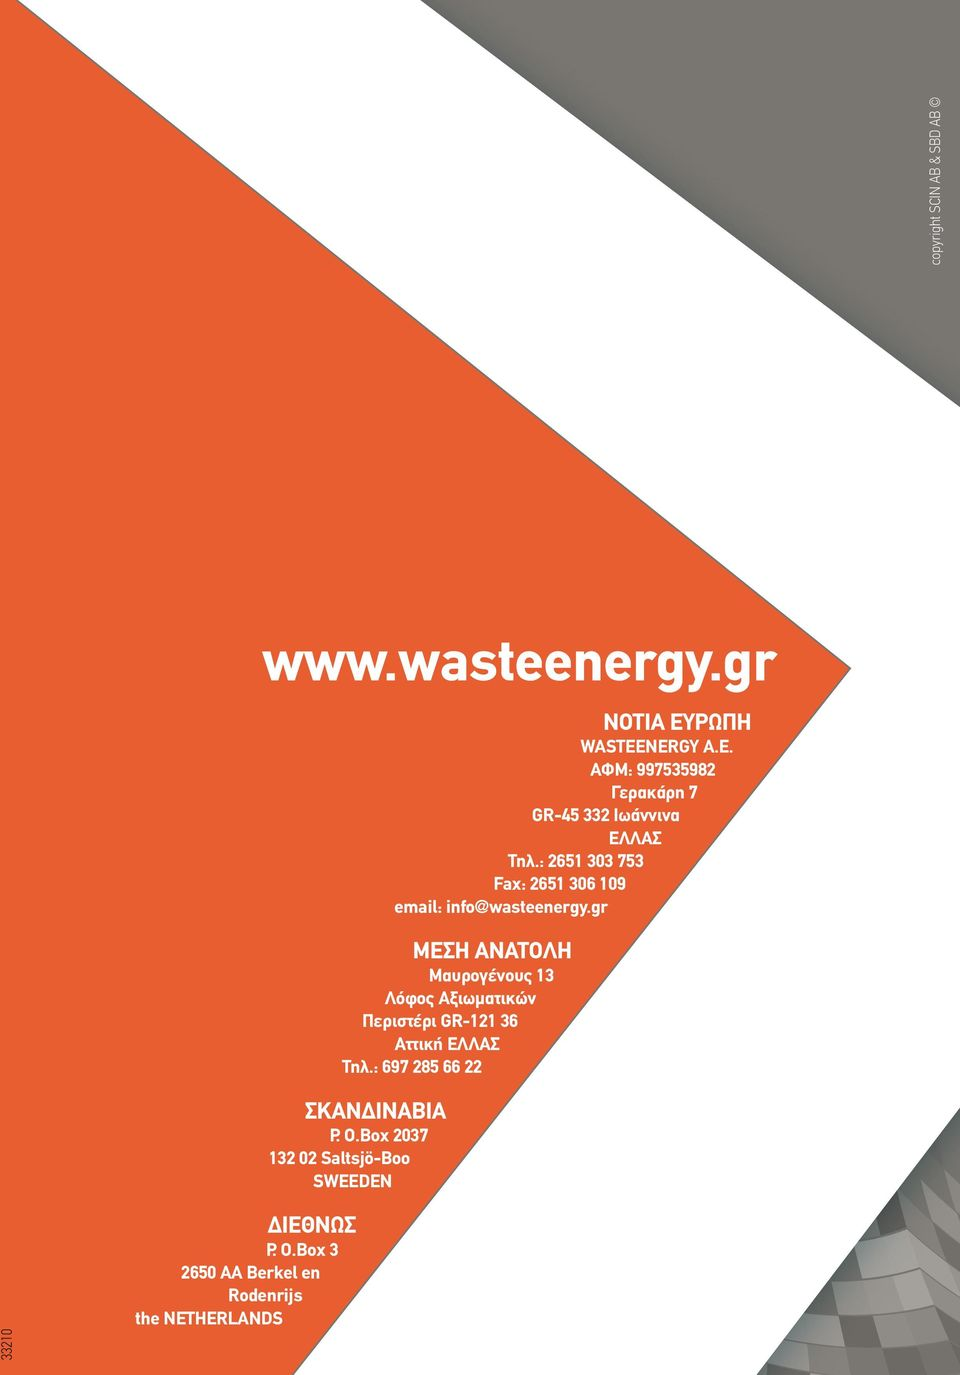 : 2651 303 753 Fax: 2651 306 109 email: info@wasteenergy.